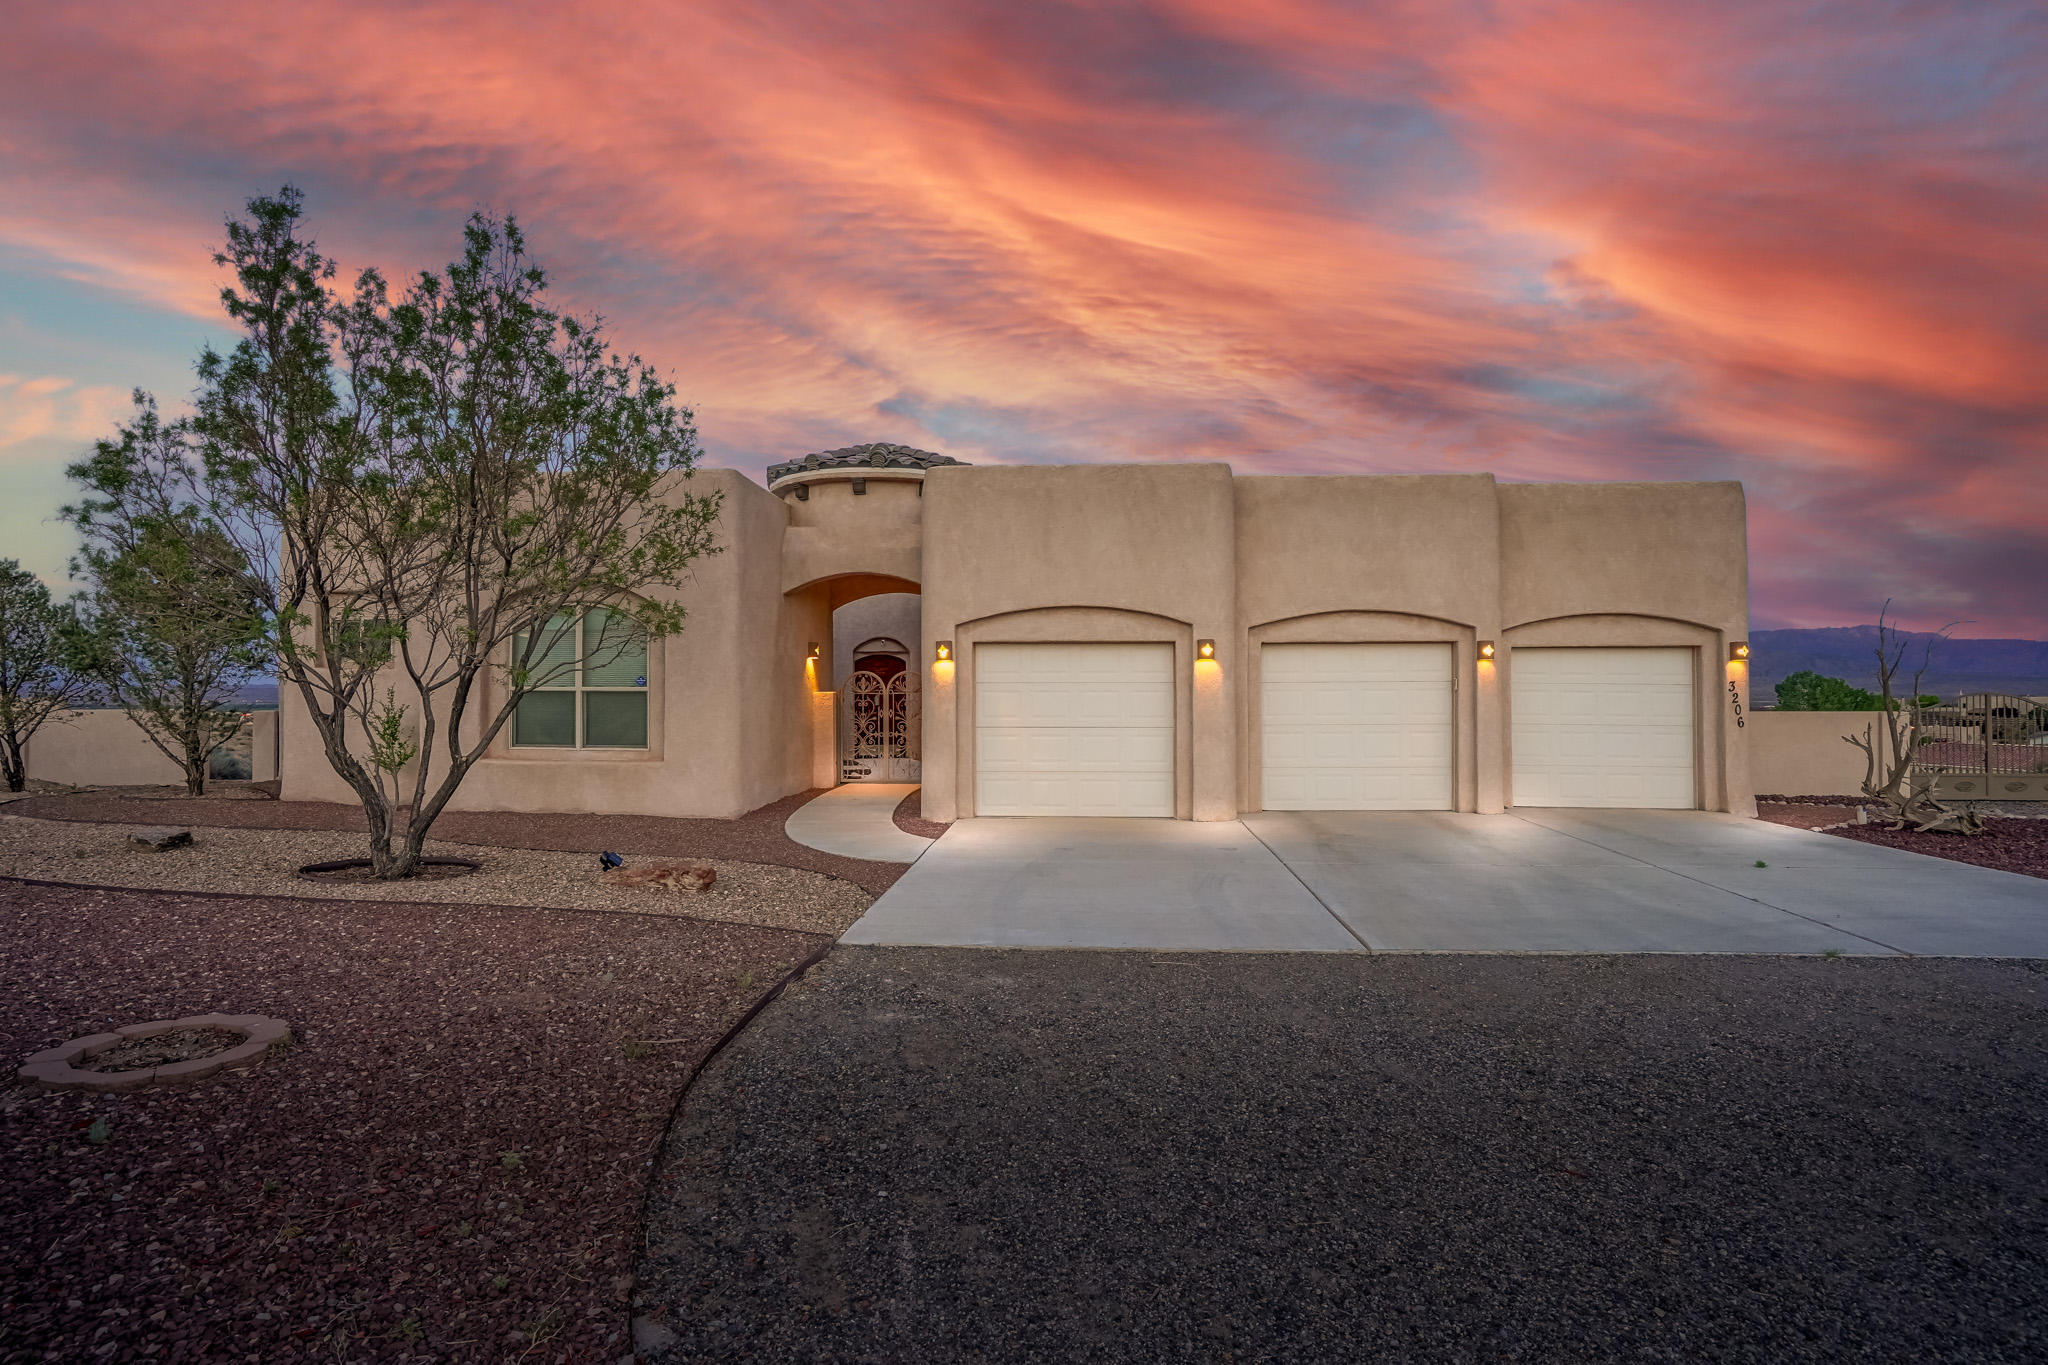 Open House Saturday 5/15 from 11-1 pm! Custom Santa Fe style home situated on .93 acres with must-see details! Private front courtyard, three-car garage, fantastic mountain views! Soaring ceilings with wood beam accents, kiva fireplace, built-in nichos! The spacious owner's suite features a wall of windows with an amazing view of the valley, Sandia and Santa Fe mountains! The owner's suite is located on the main level of the split-level floorplan. Stunning kitchen with gas cooktop, stainless steel appliances, and center Island! Large back patio space to sit and enjoy the Santa Fe and Sandia Mountain views! Enjoy the sunrise on the oversized Balcony with your morning cup of coffee. Take a virtual walkthrough tour today!